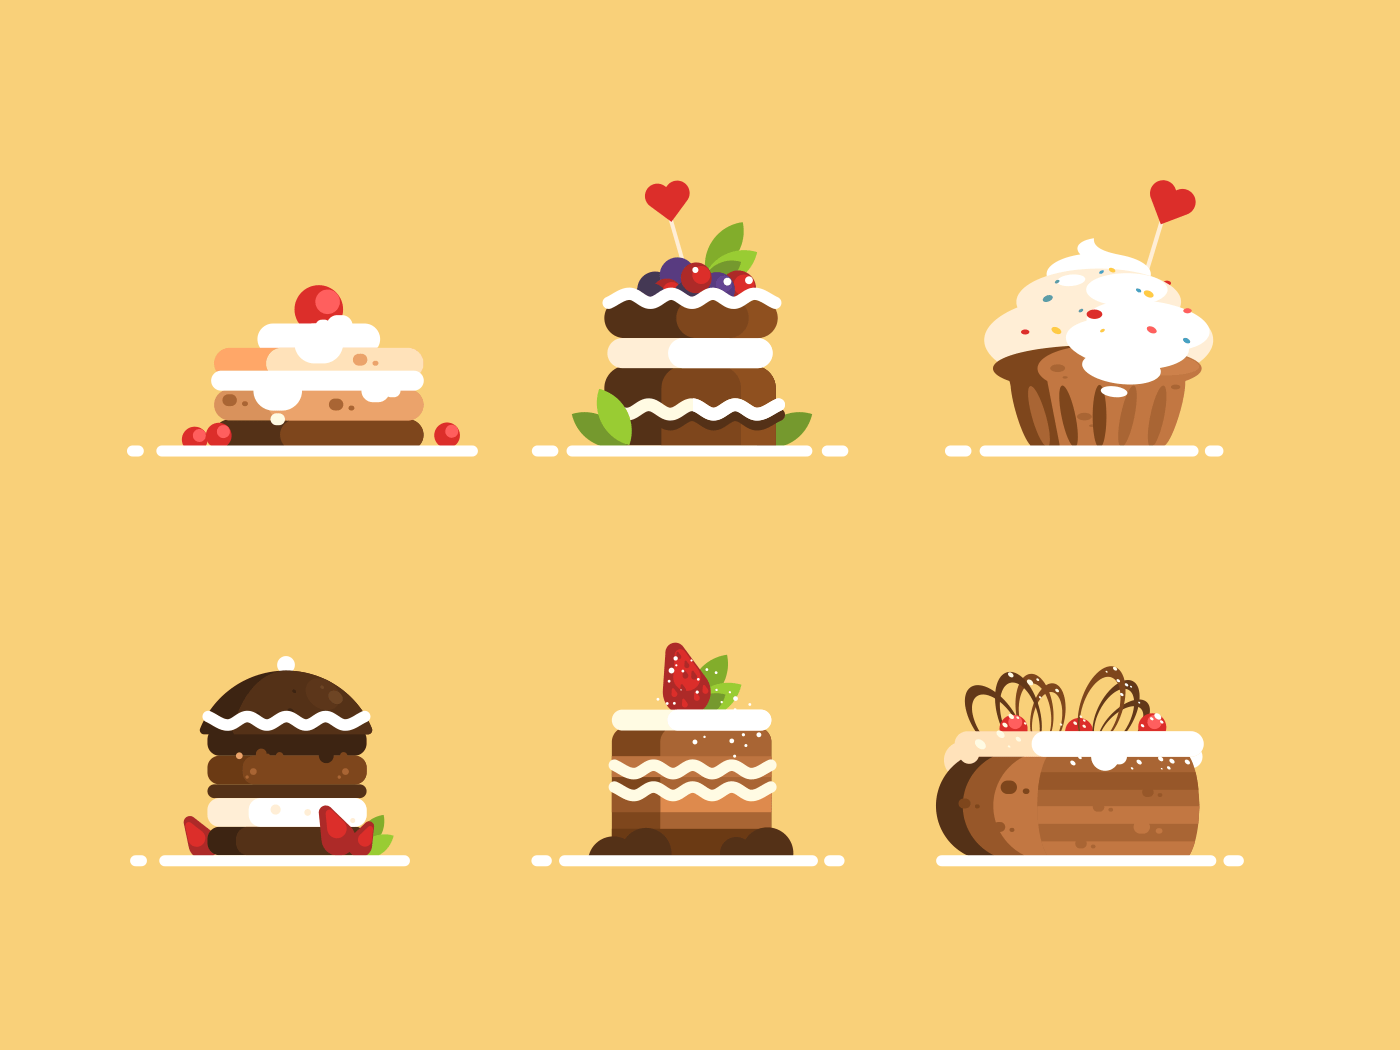 Sweet desserts set. Cake with cream and berries flat style. Vector illustration